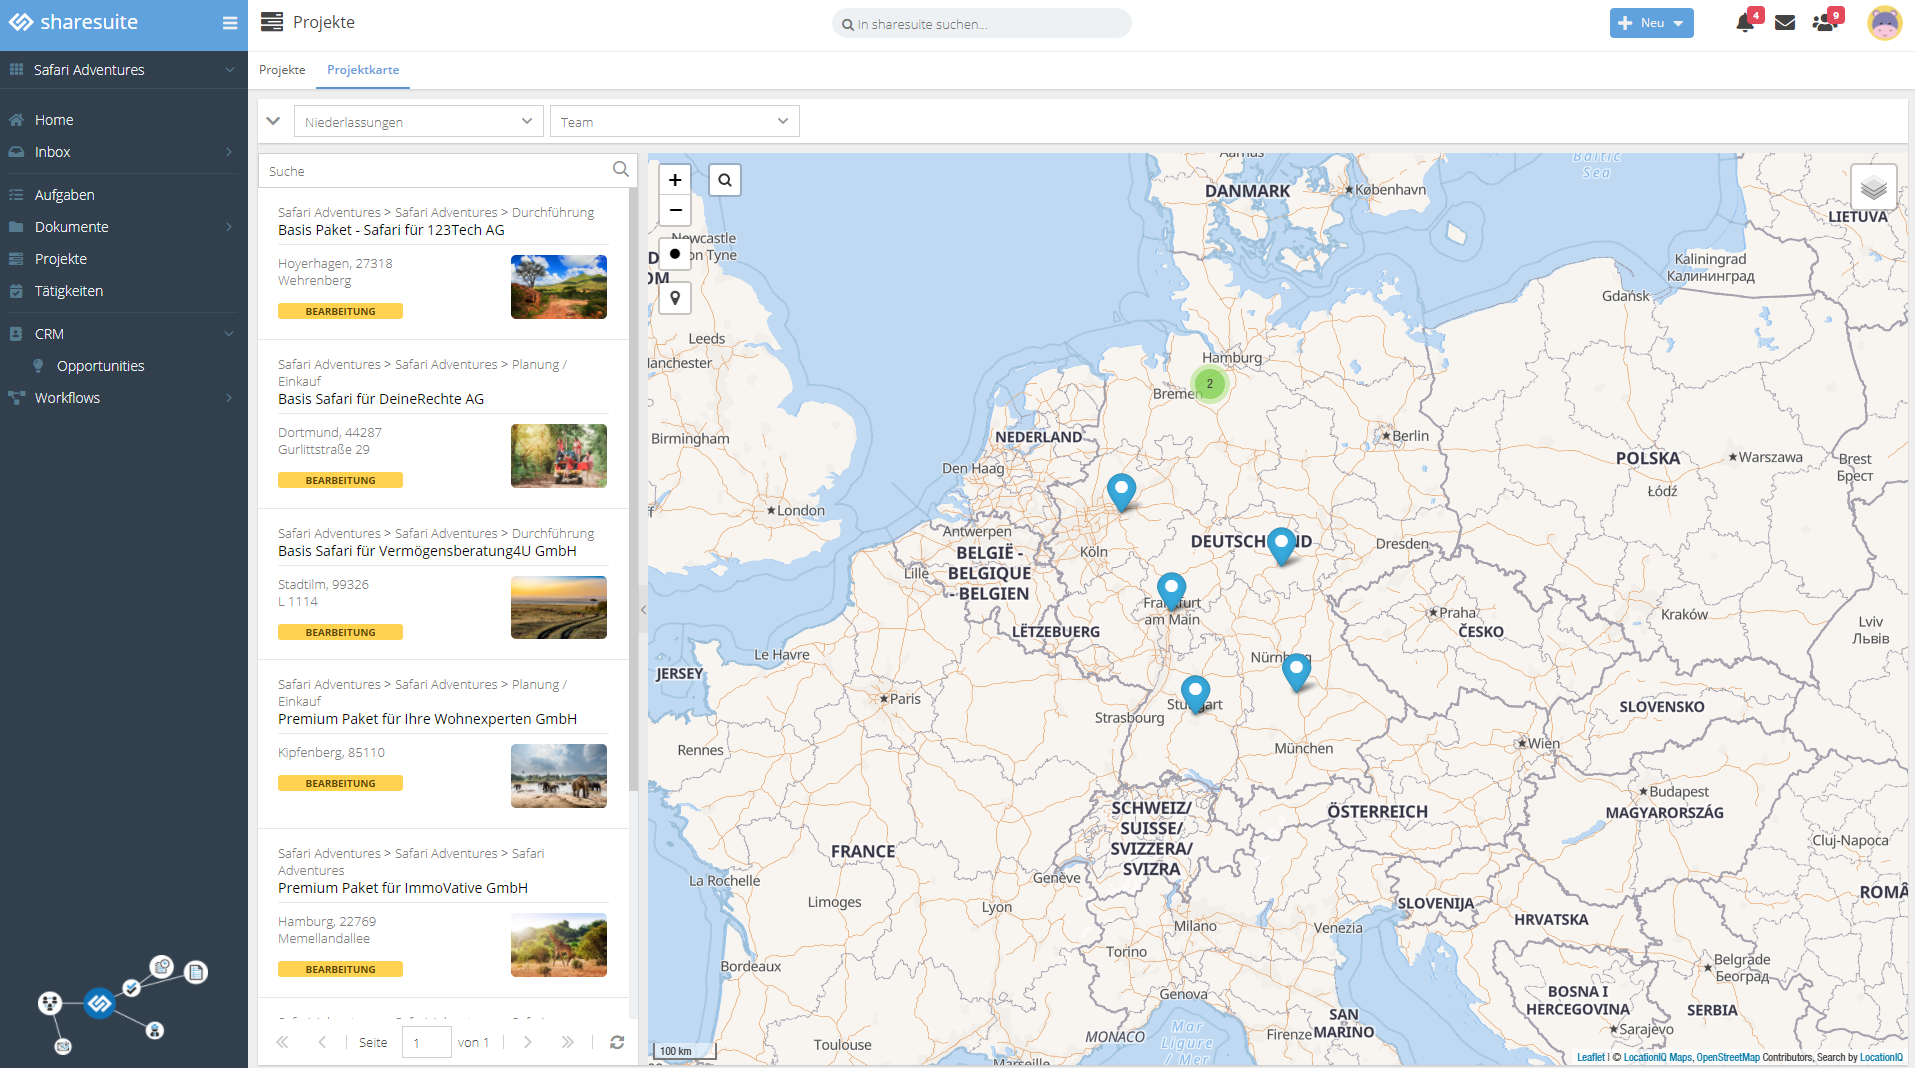 The project map visualizes project information and its interrelationships.